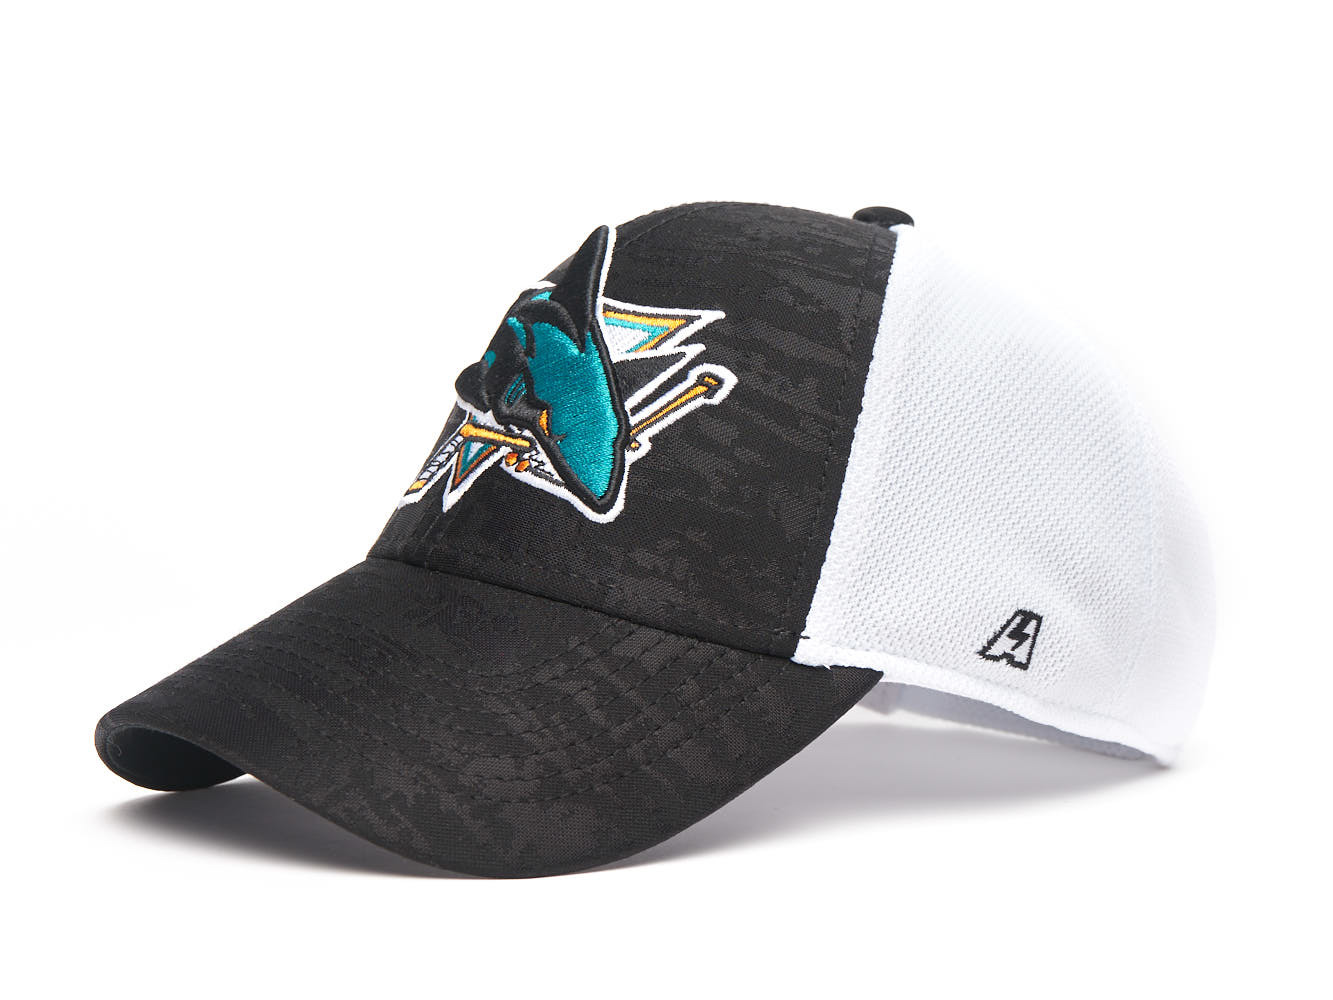 Бейсболка NHL San Jose Sharks (размер M)